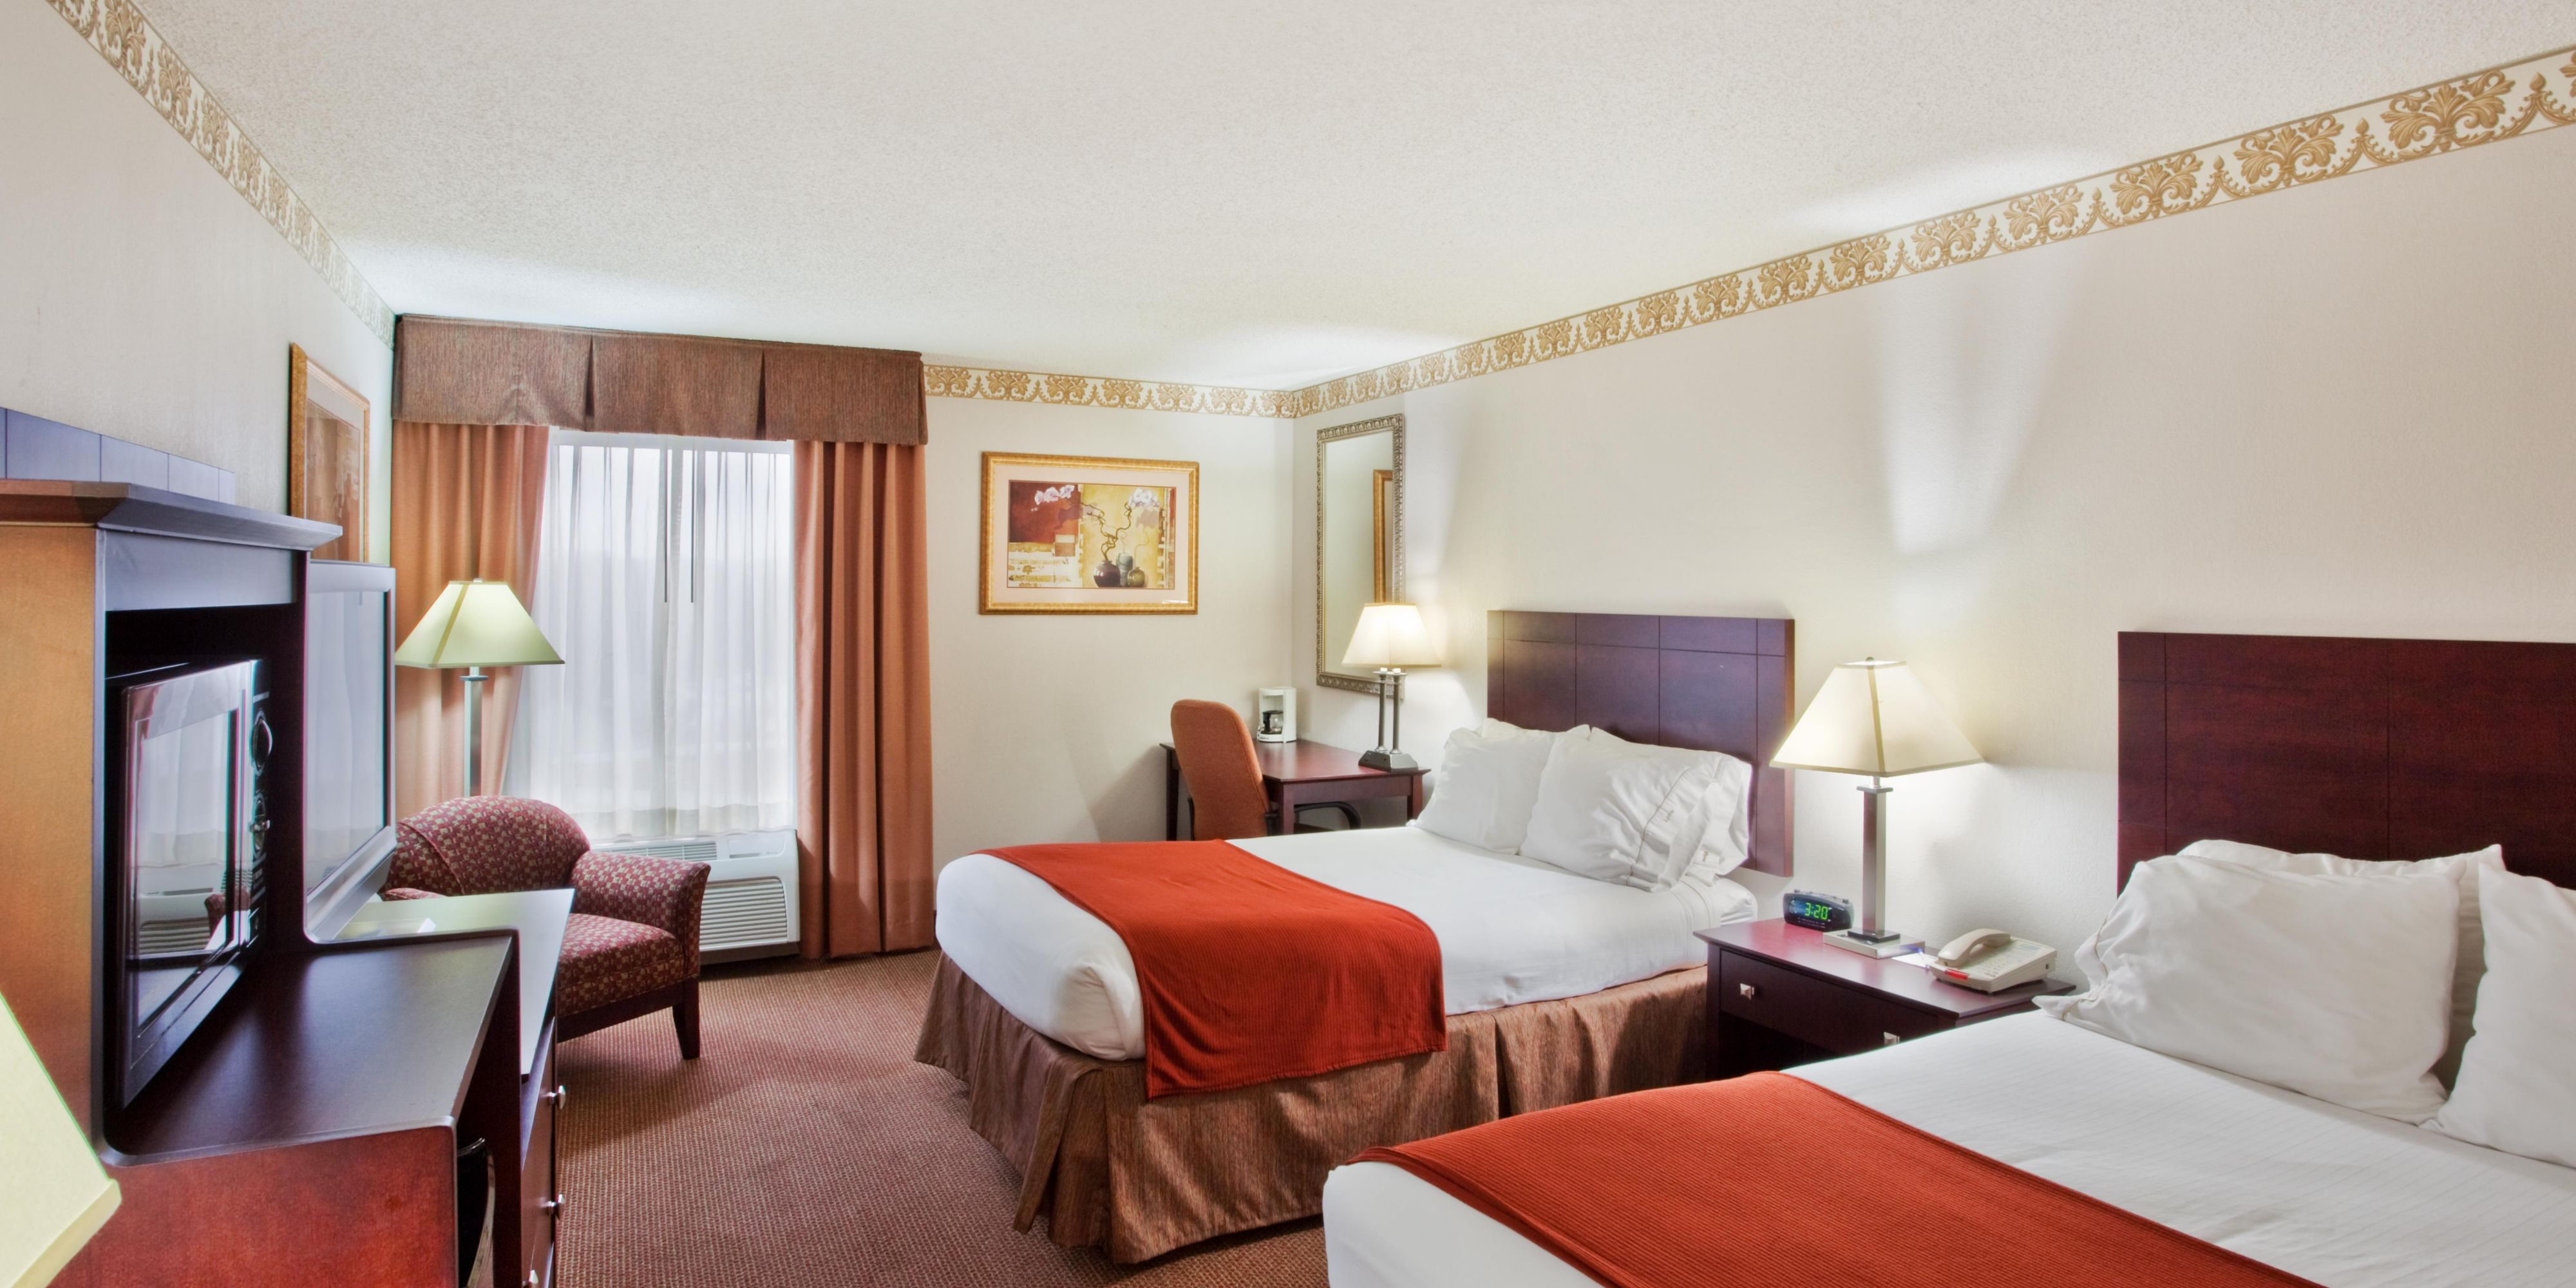 holiday inn express atlanta w i douglasville hotel by ihg holiday inn express douglasville 4262712867 2x1